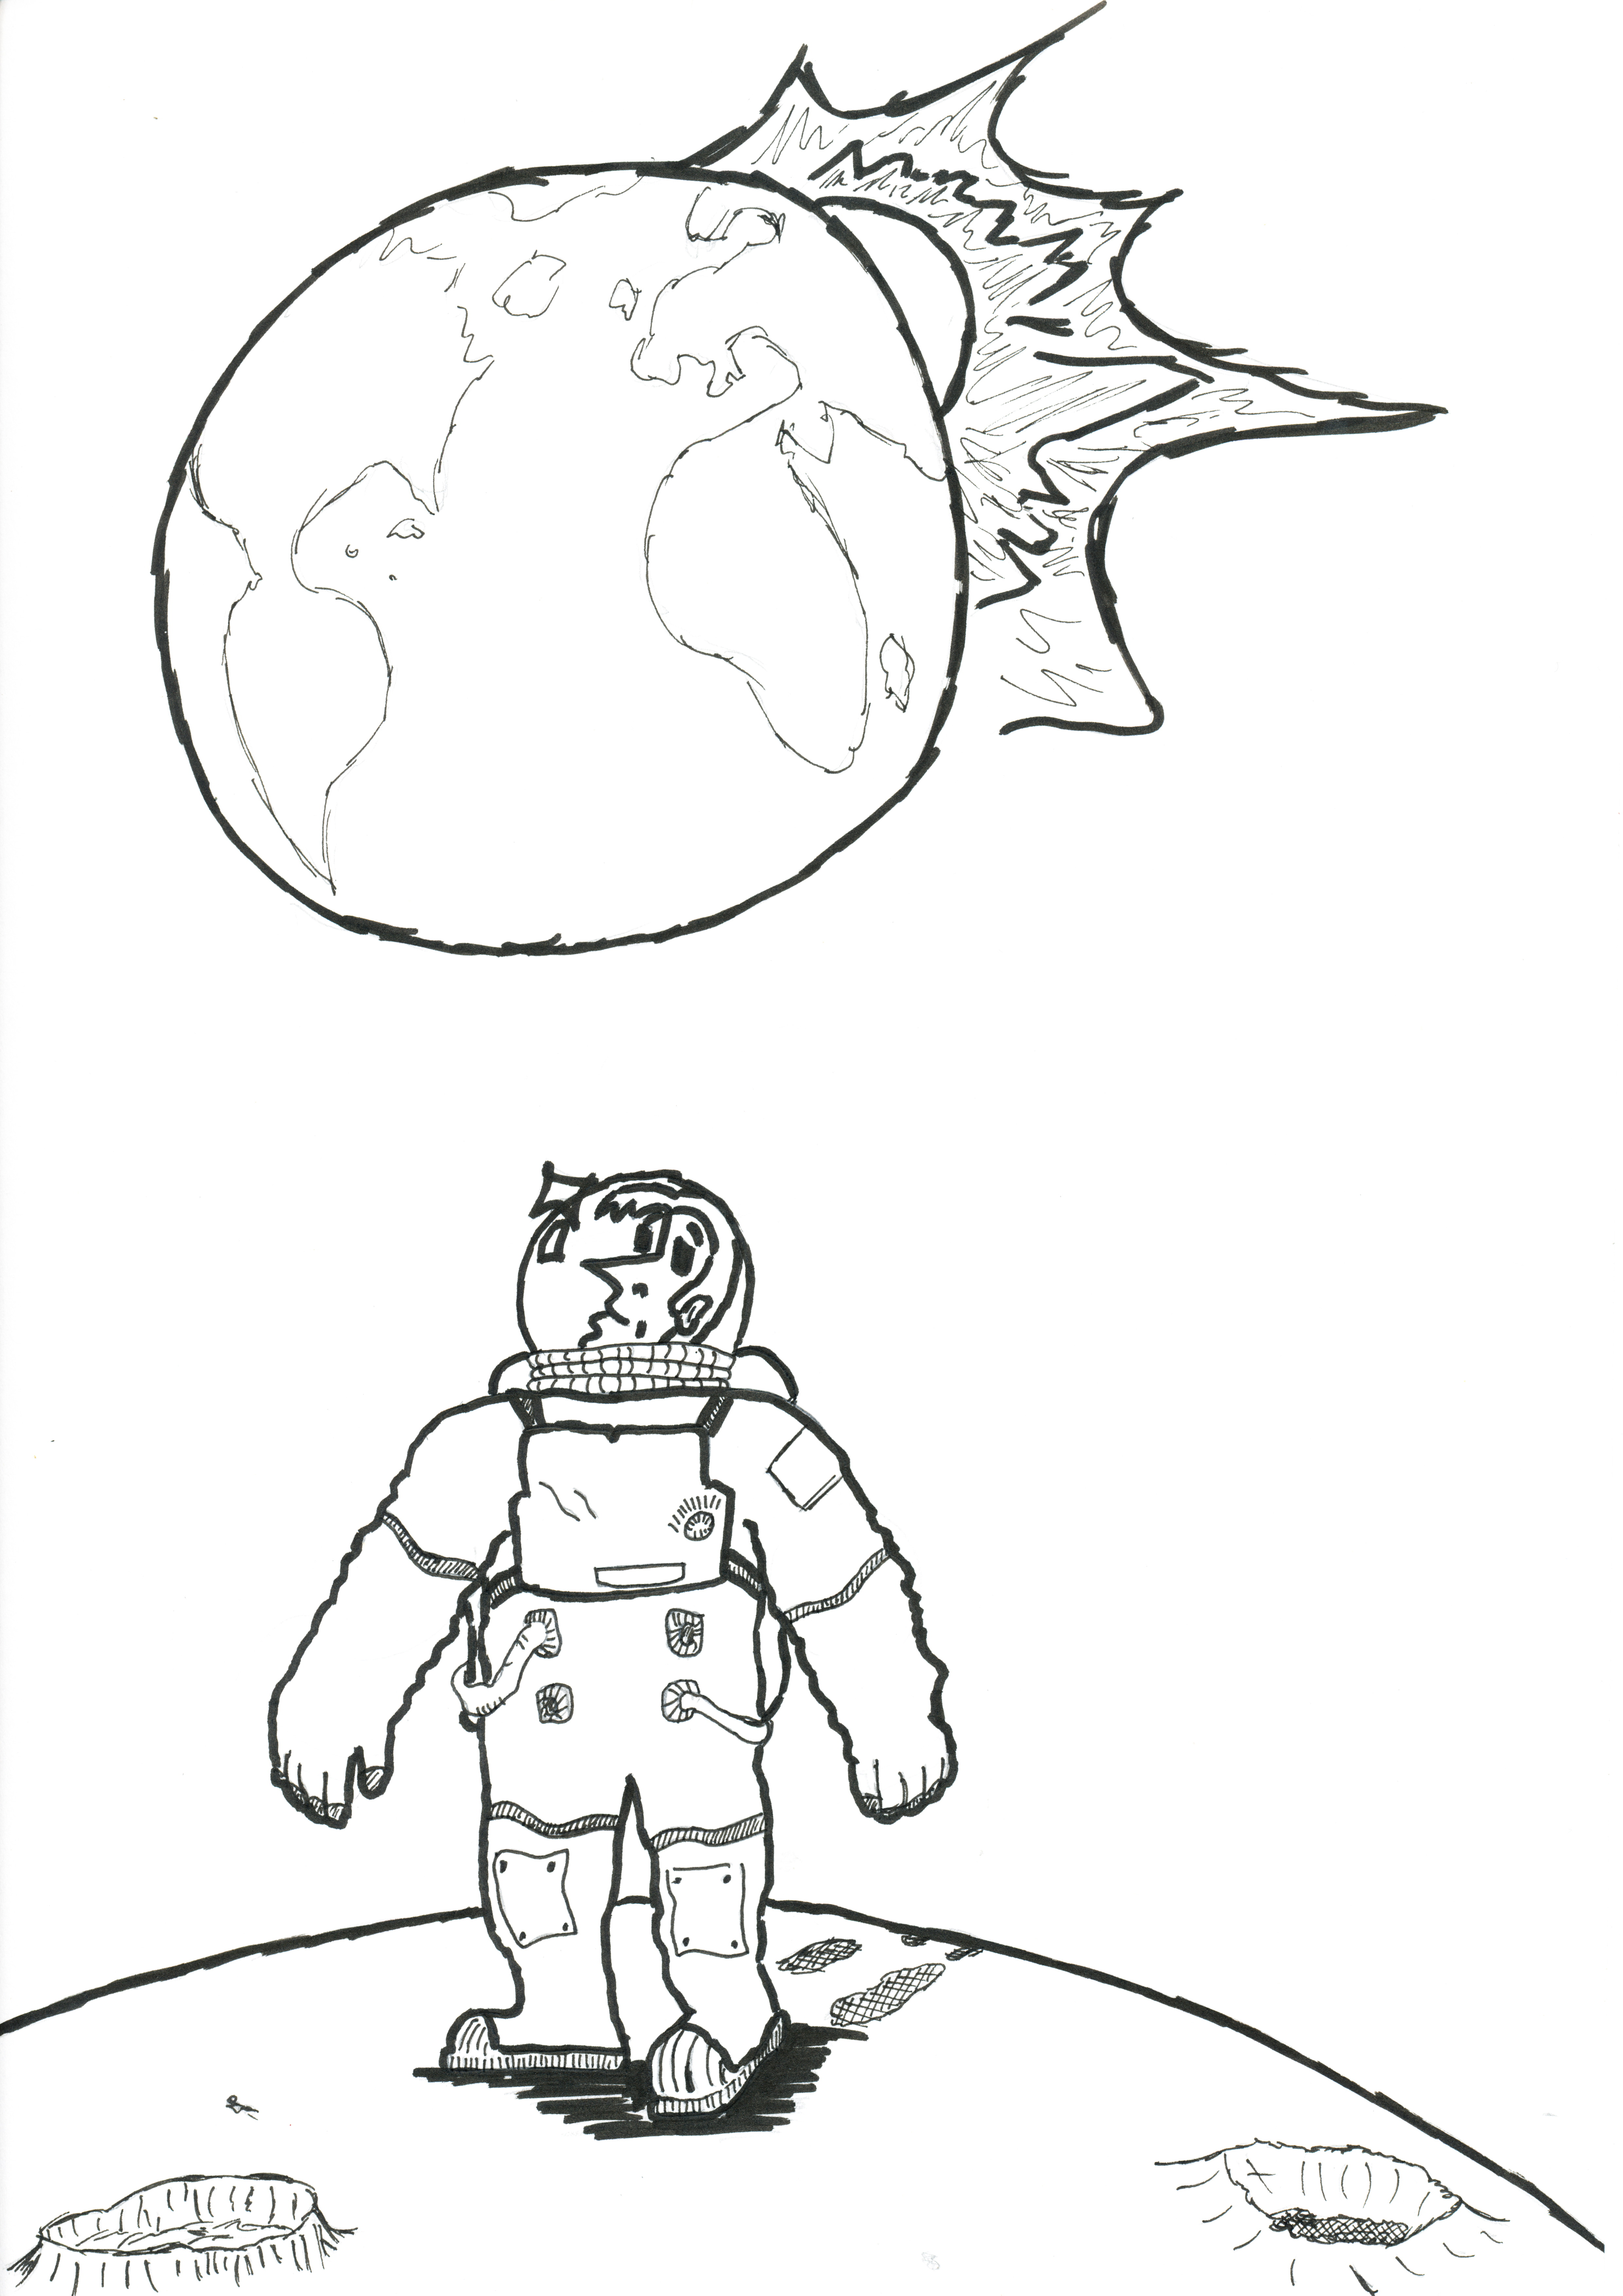 4960x7015 Gaining Perspective (Astronaut Drawing) [Rob]ots, Puppies